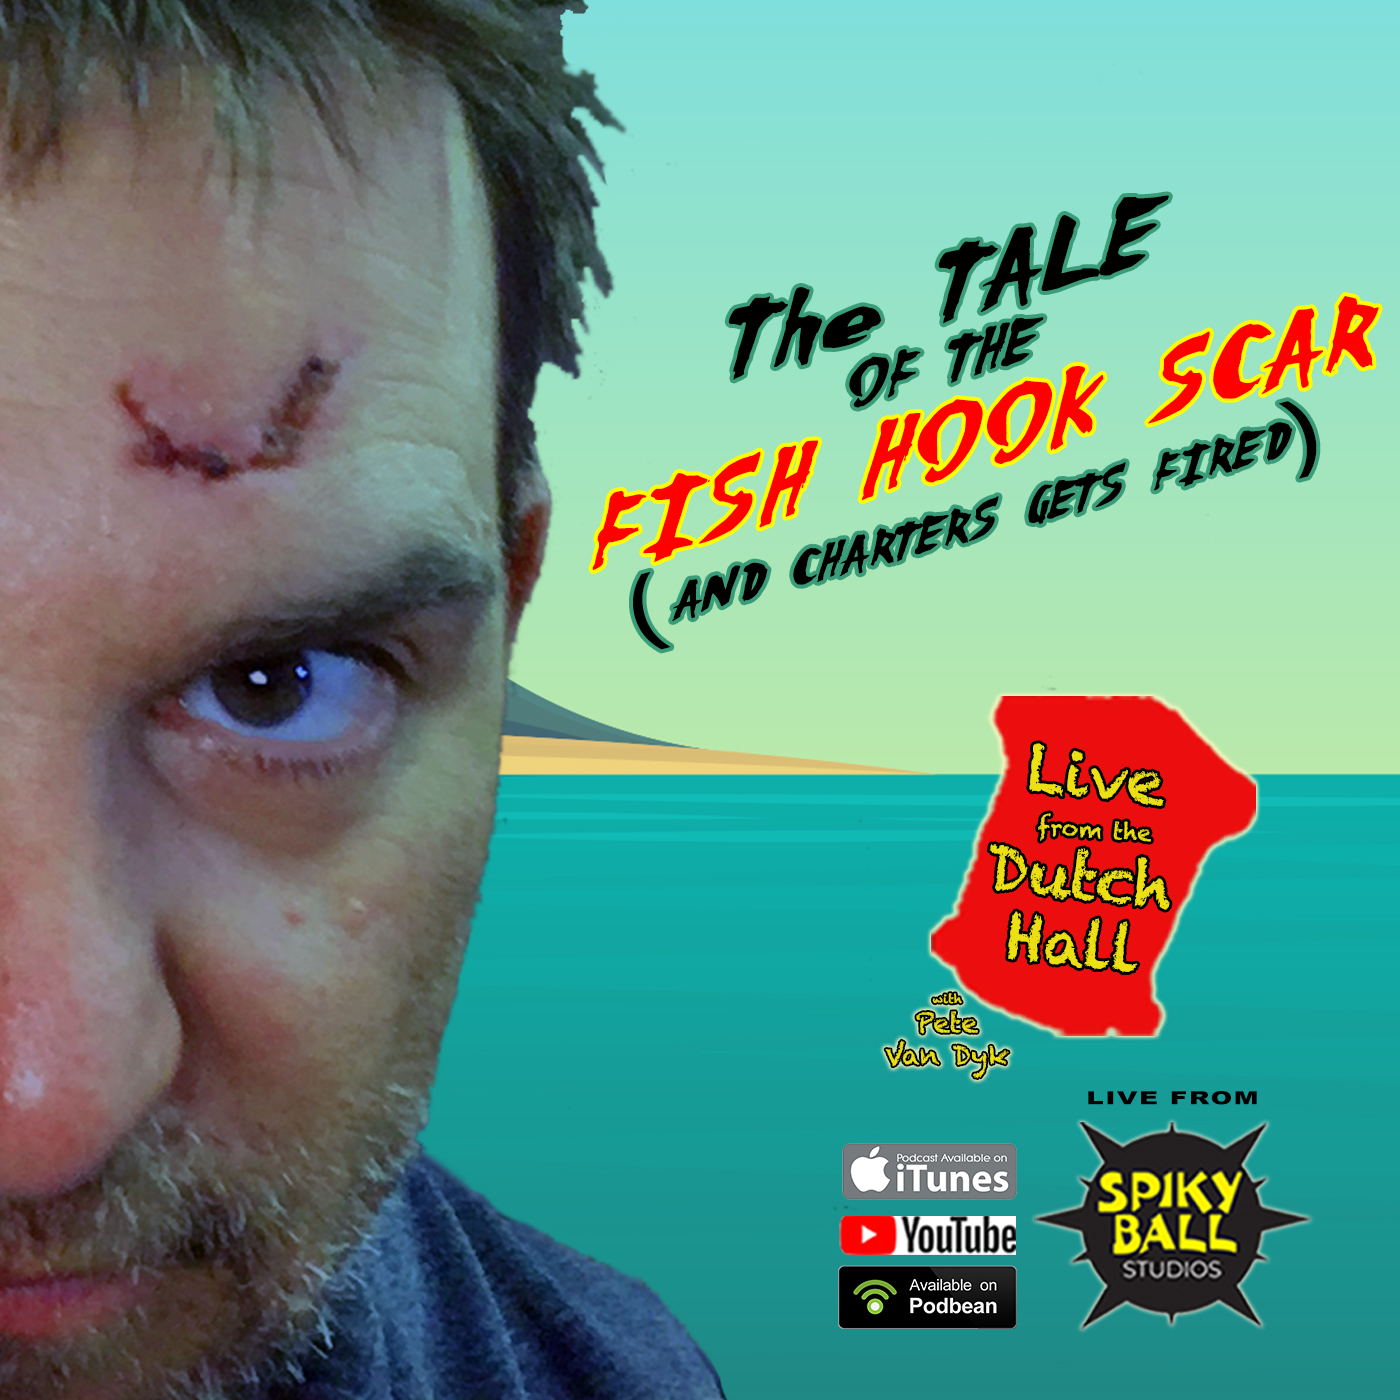 The Tale of the Fish Hook Scar